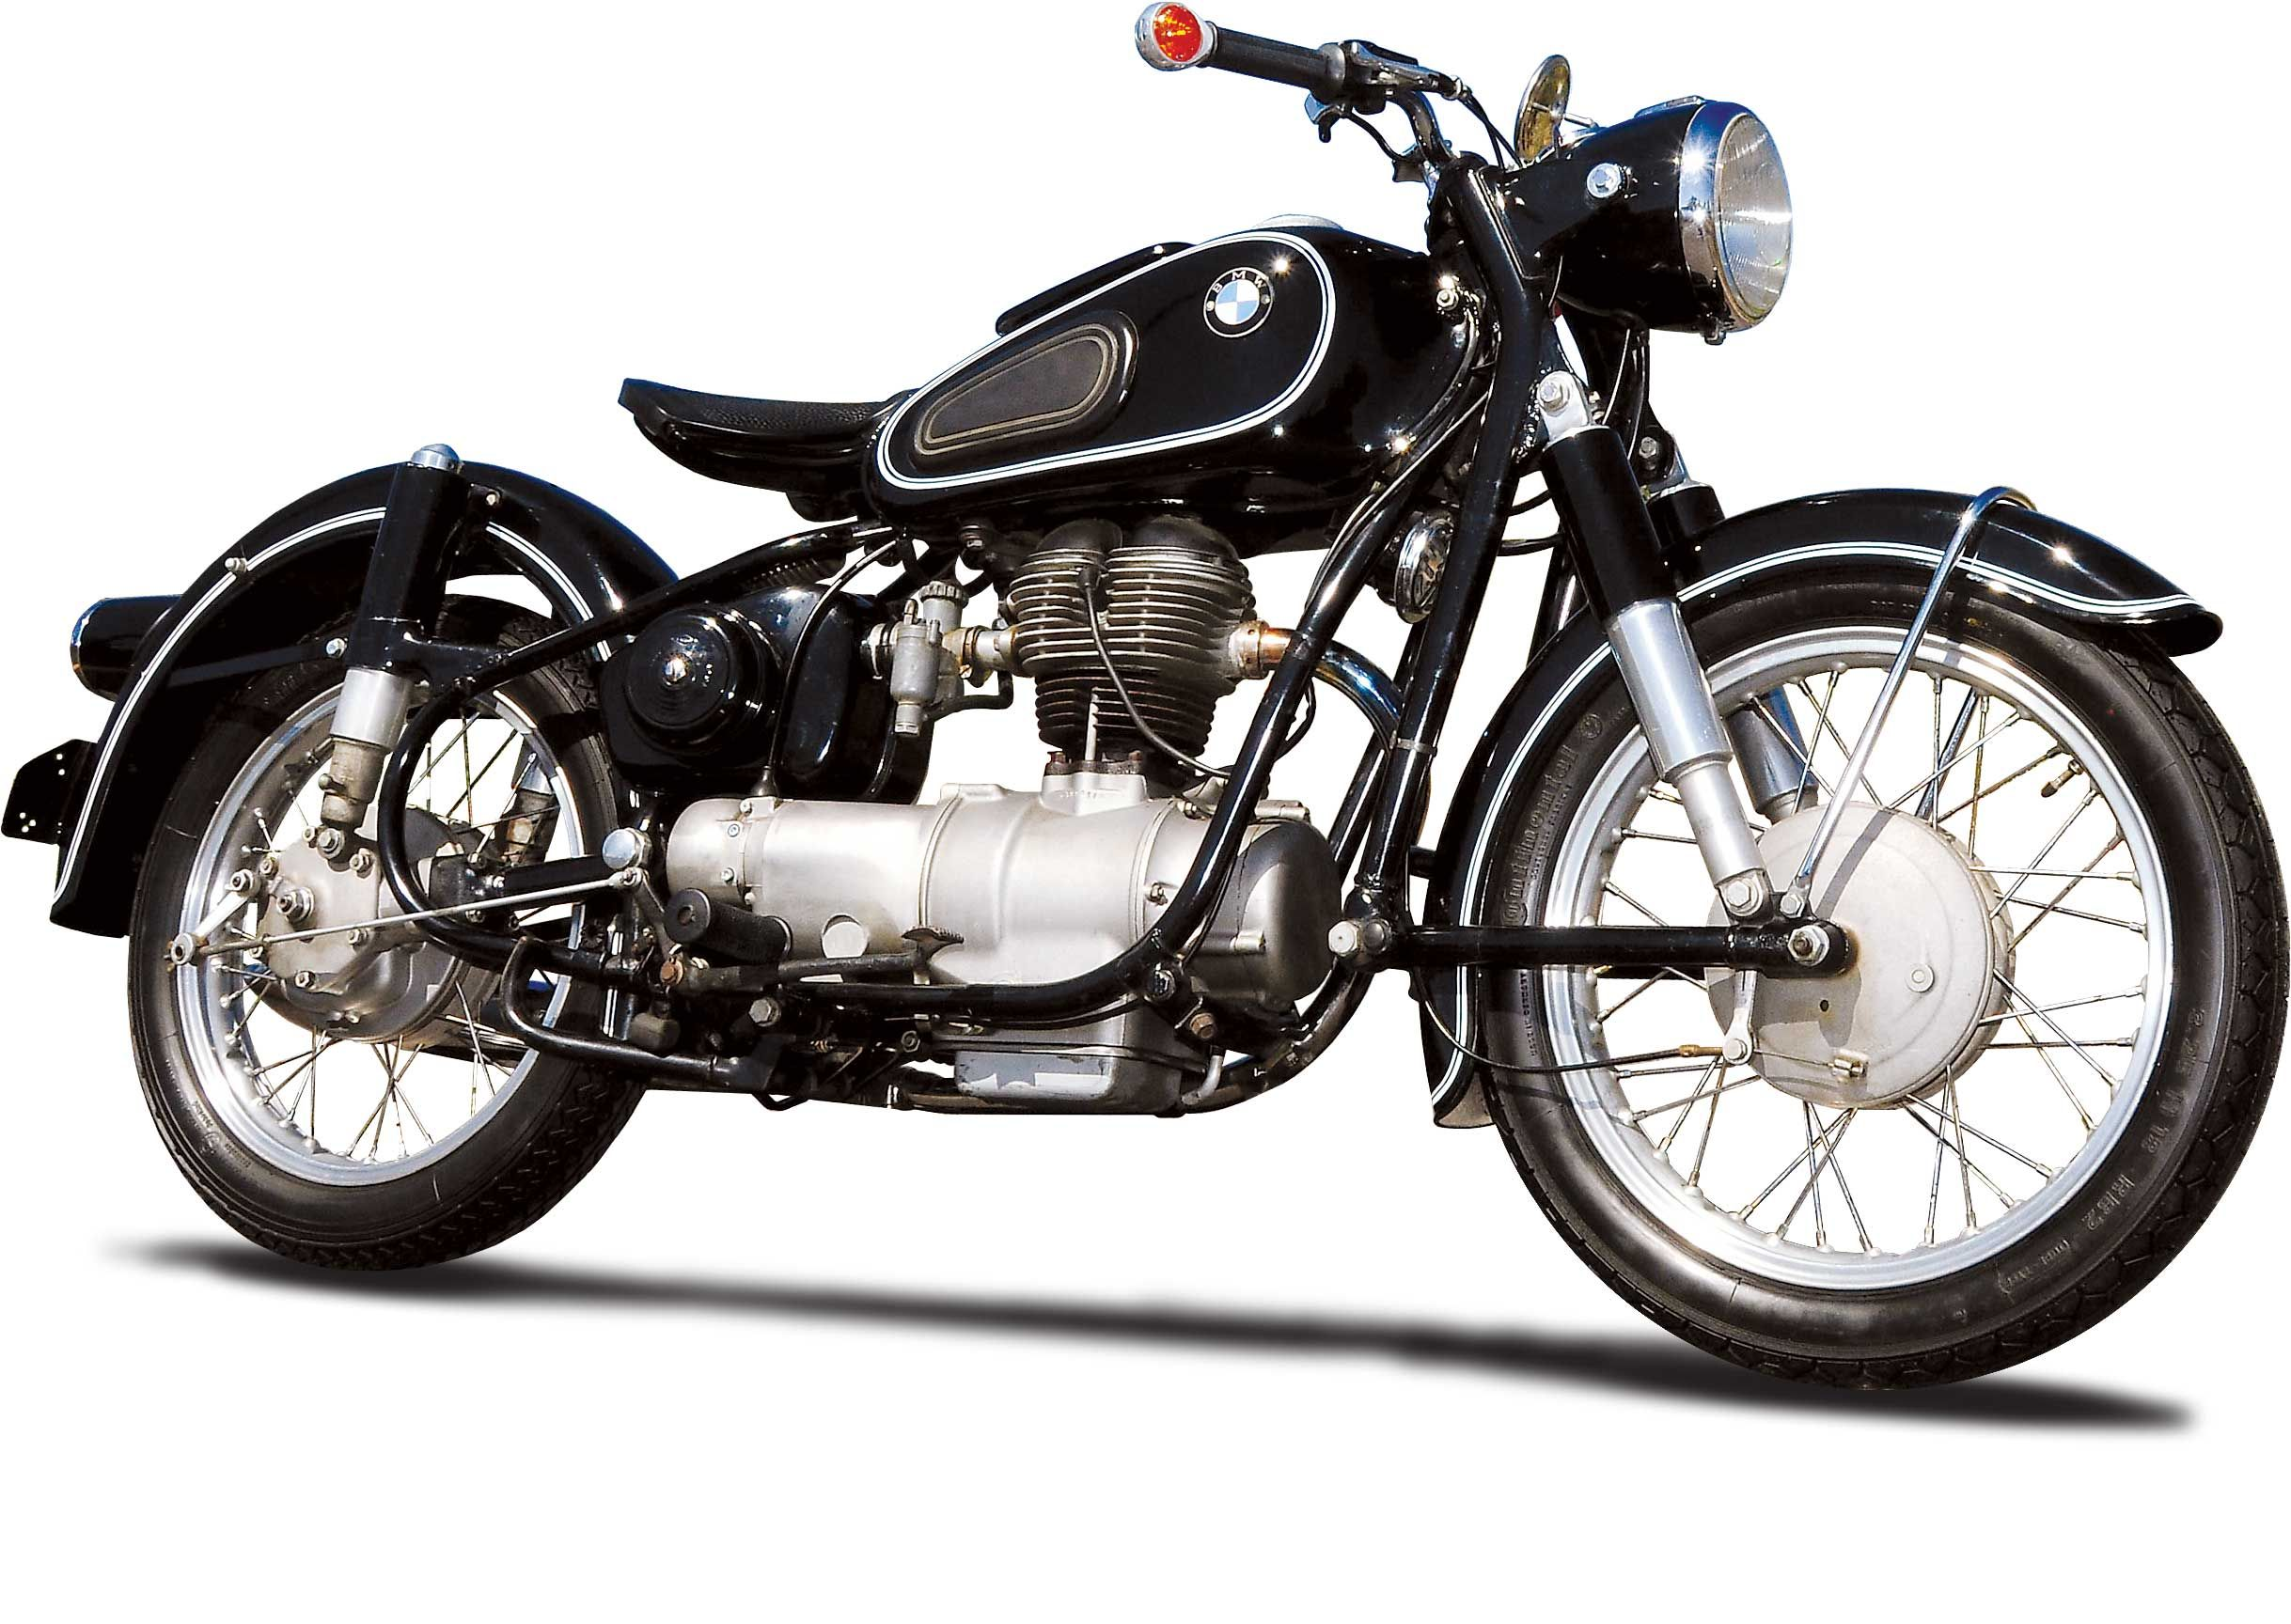 The 250cc Bmw R27 Classic German Motorcycles With Images Bmw